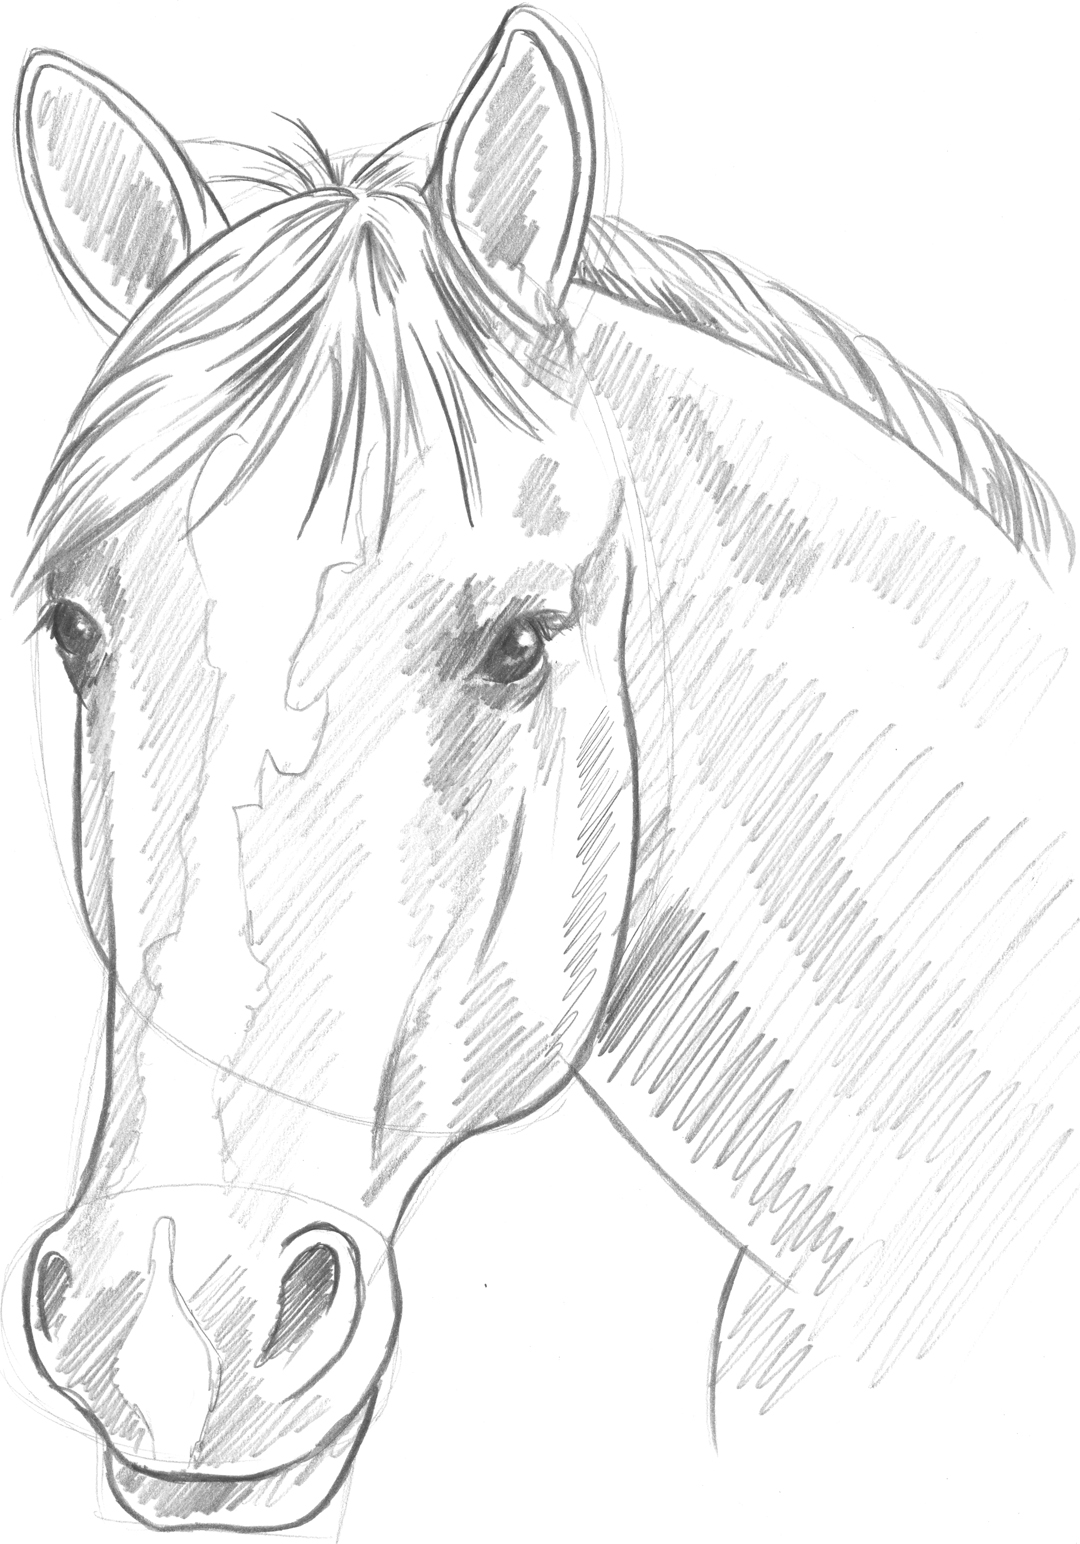 1080x1544 2.2.a16 Frontal View Of A Horse's Head